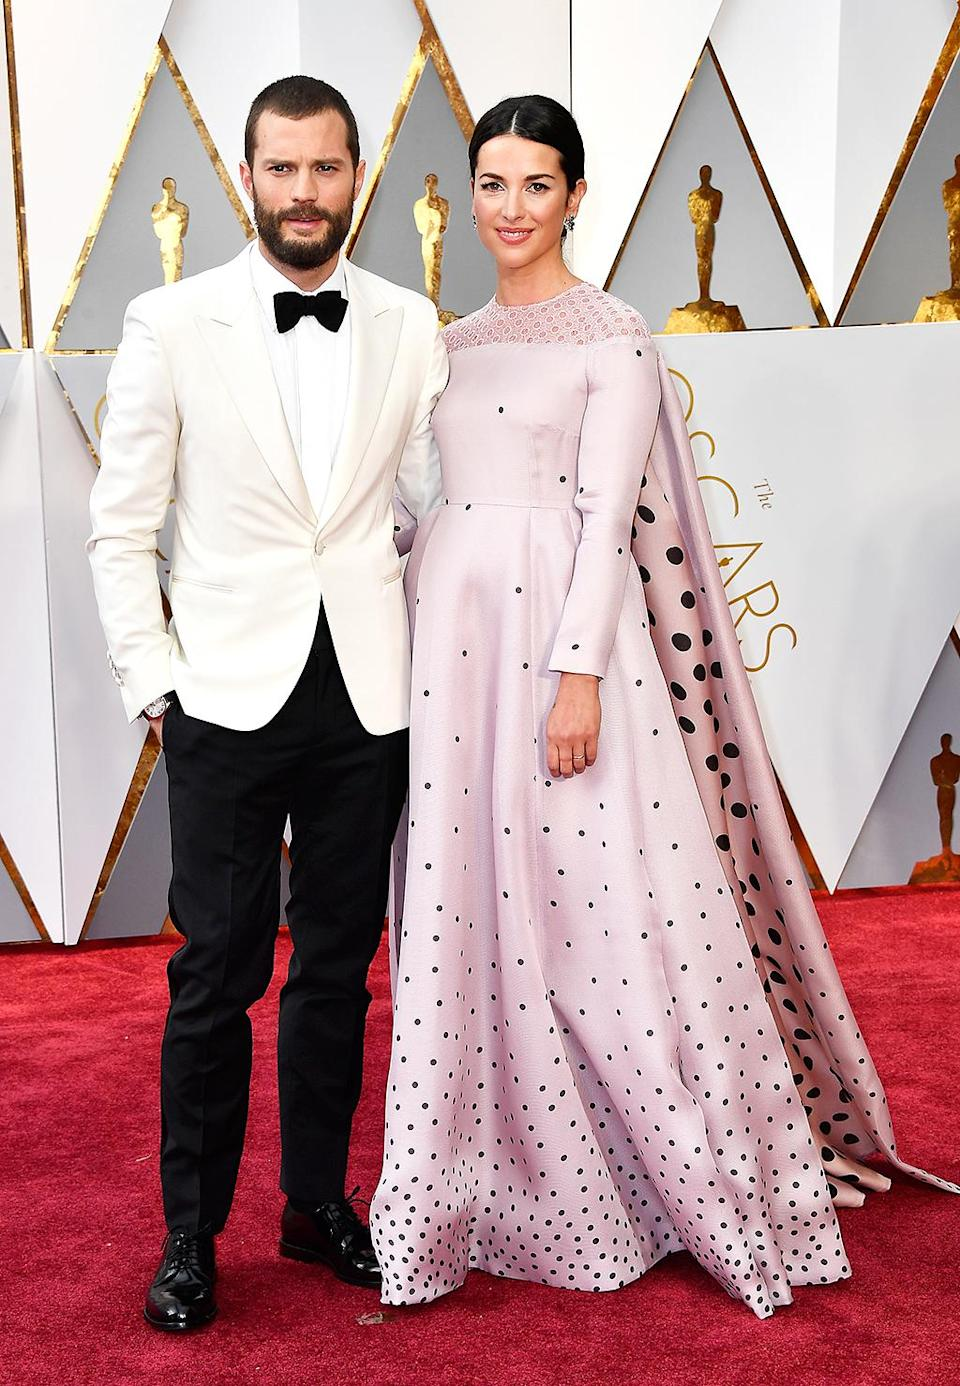 <p>Jamie Dornan and Amelia Warner attend the 89th Annual Academy Awards at Hollywood & Highland Center on Feb. 26, 2017. (Photo by Frazer Harrison/Getty Images) </p>